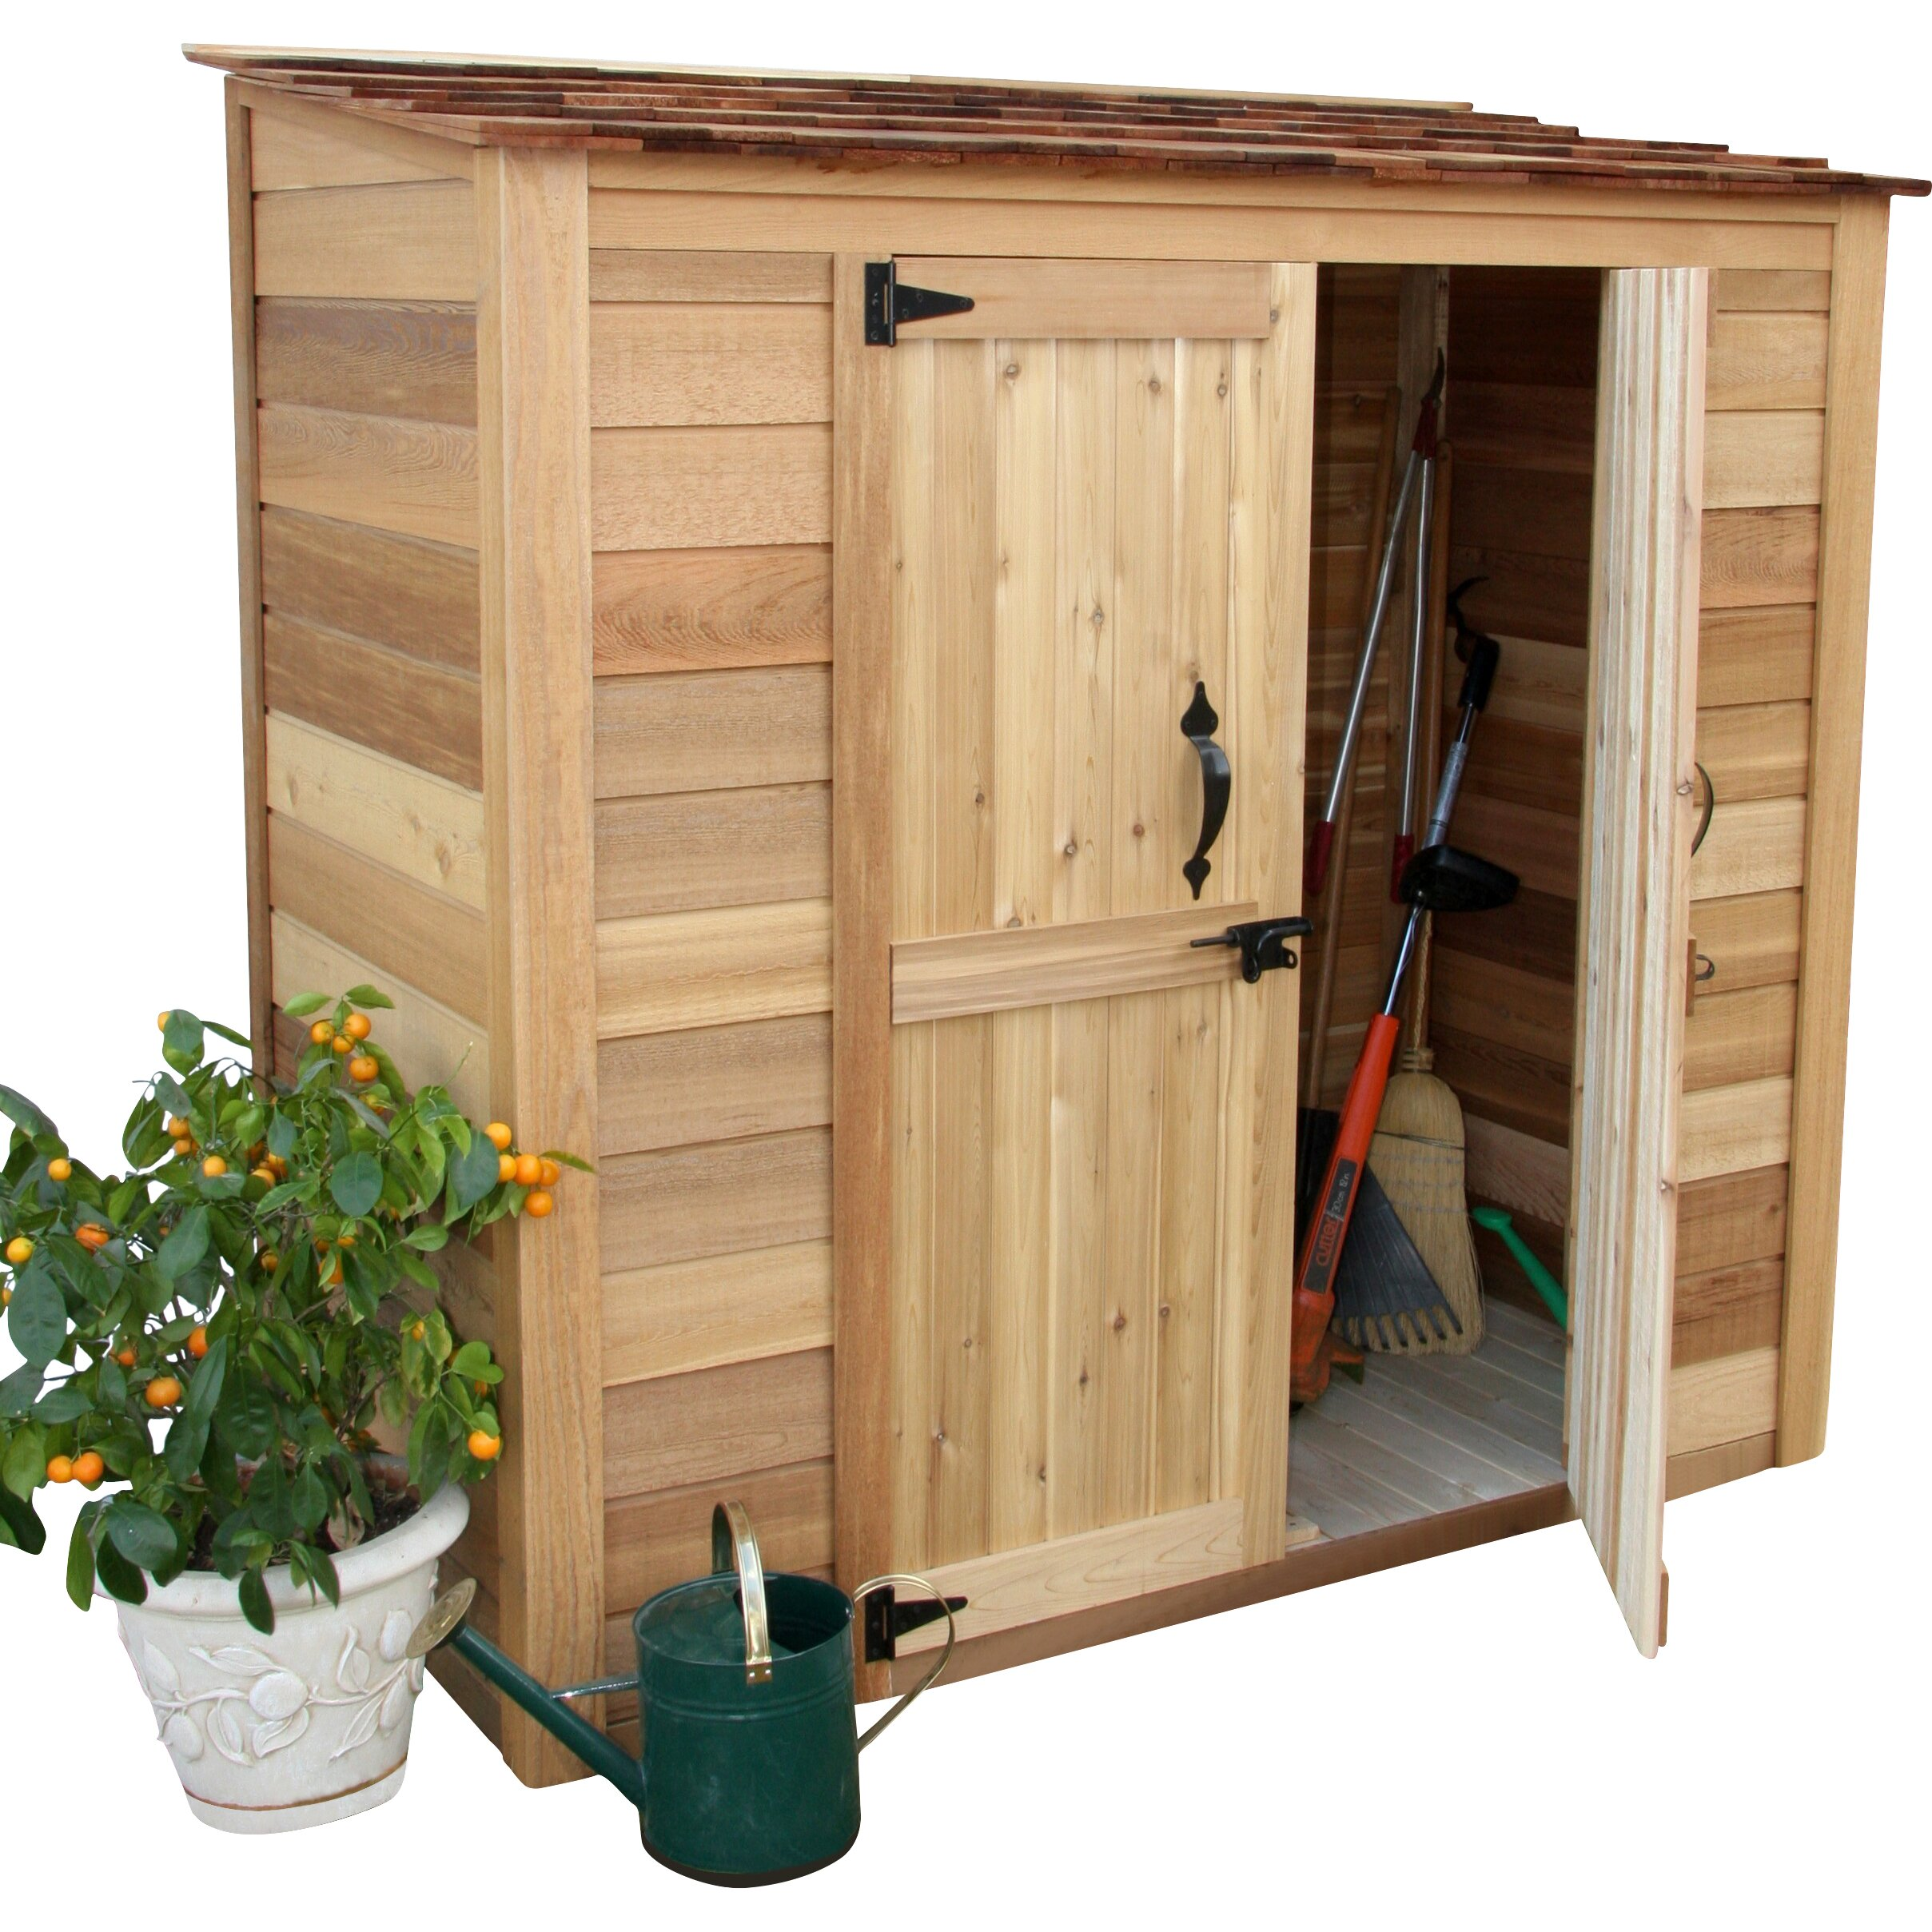 Outdoor living today garden chalet 6 ft w x 3 ft d wood for Garden shed 7 x 3